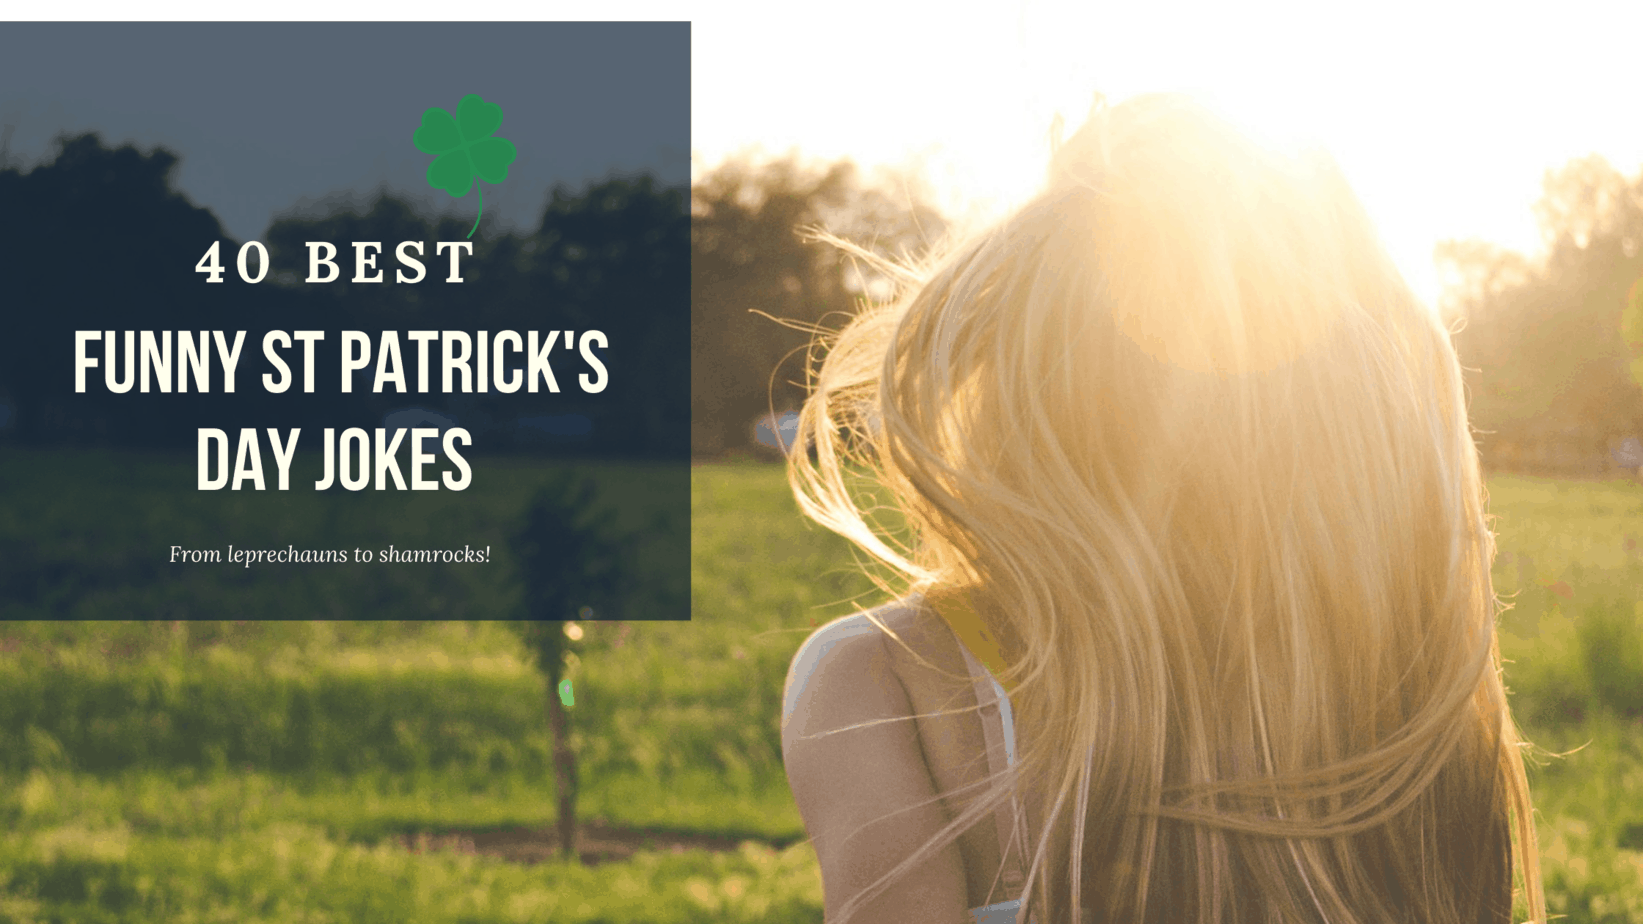 40 Best Funny St Patrick's Day Jokes To Be Sure To Give You A Laugh